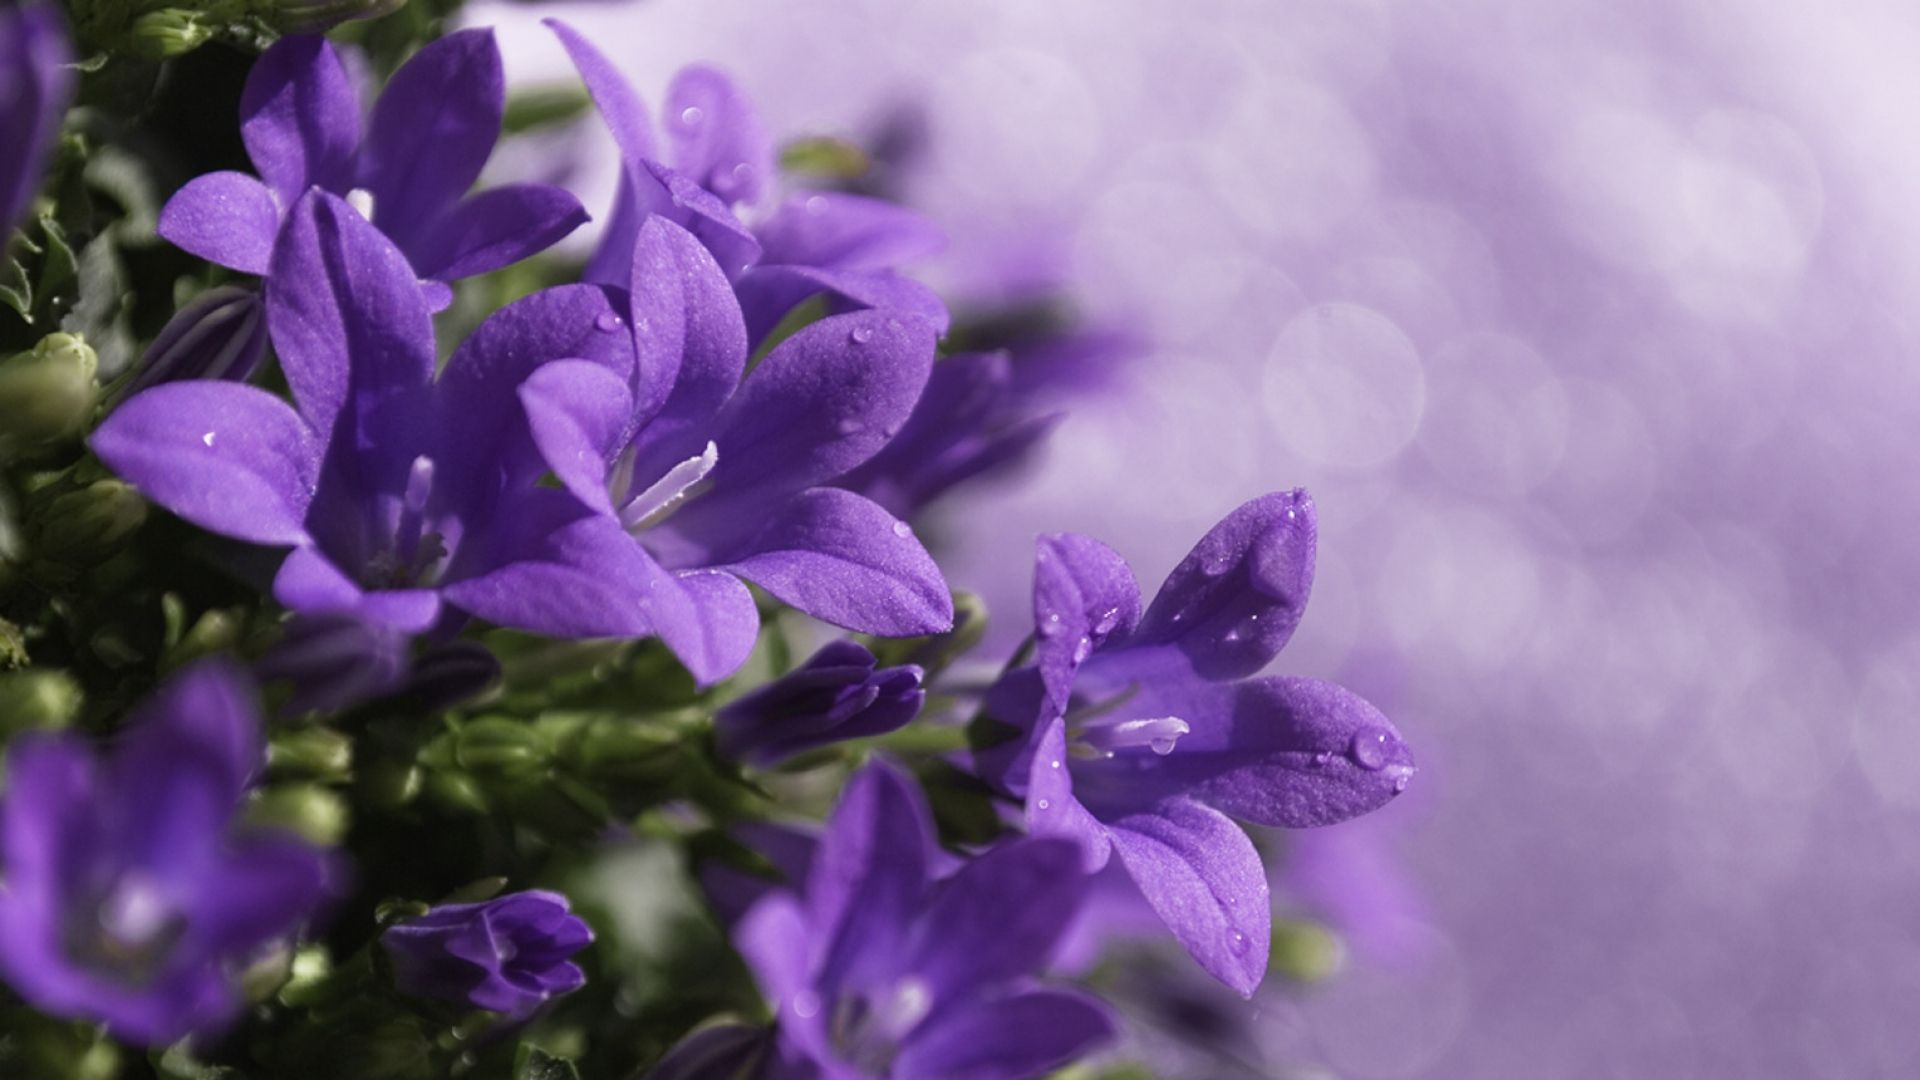 Download Wallpaper 1920x1080 Close Up Purple Flower Green Full Hd 1080p Hd Background Fleurs Mauves Fleurs Jolie Fleur